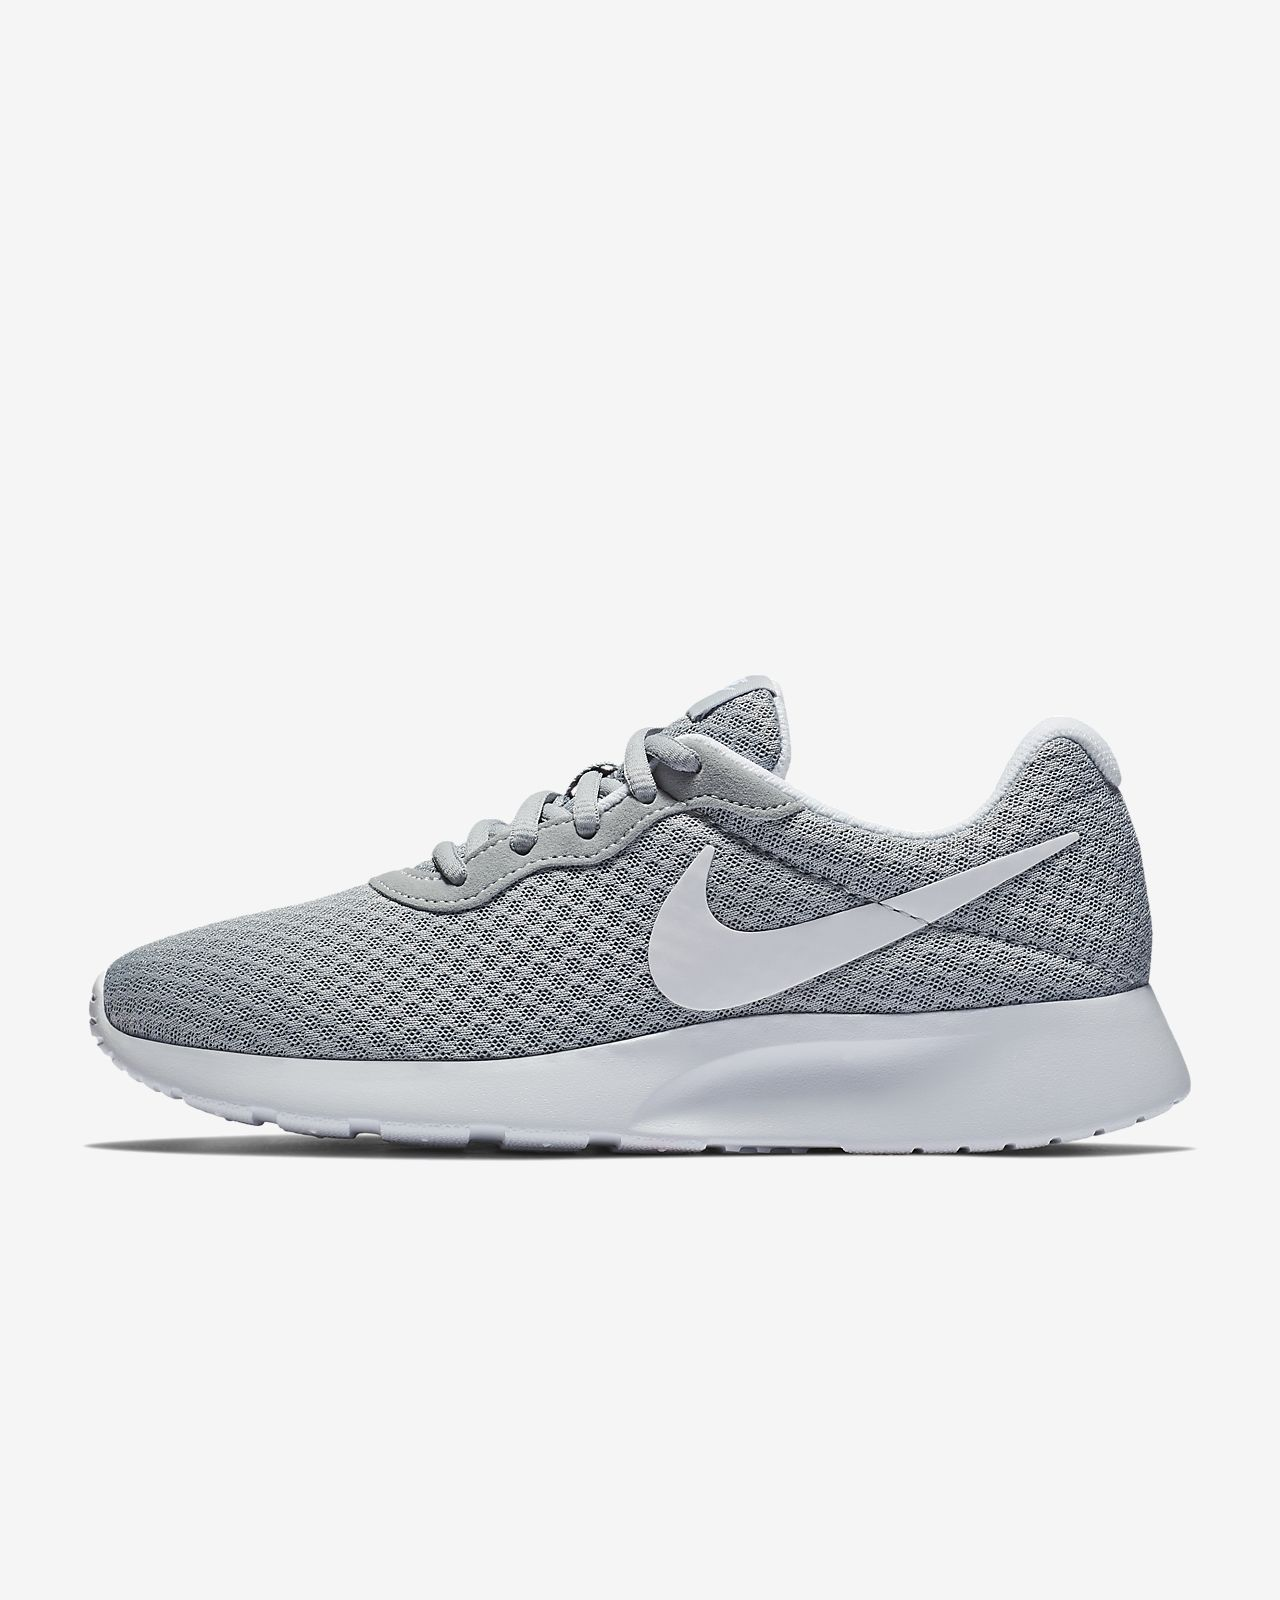 Chaussure pour Tanjun Femme BE Nike rYwgxCq6Y